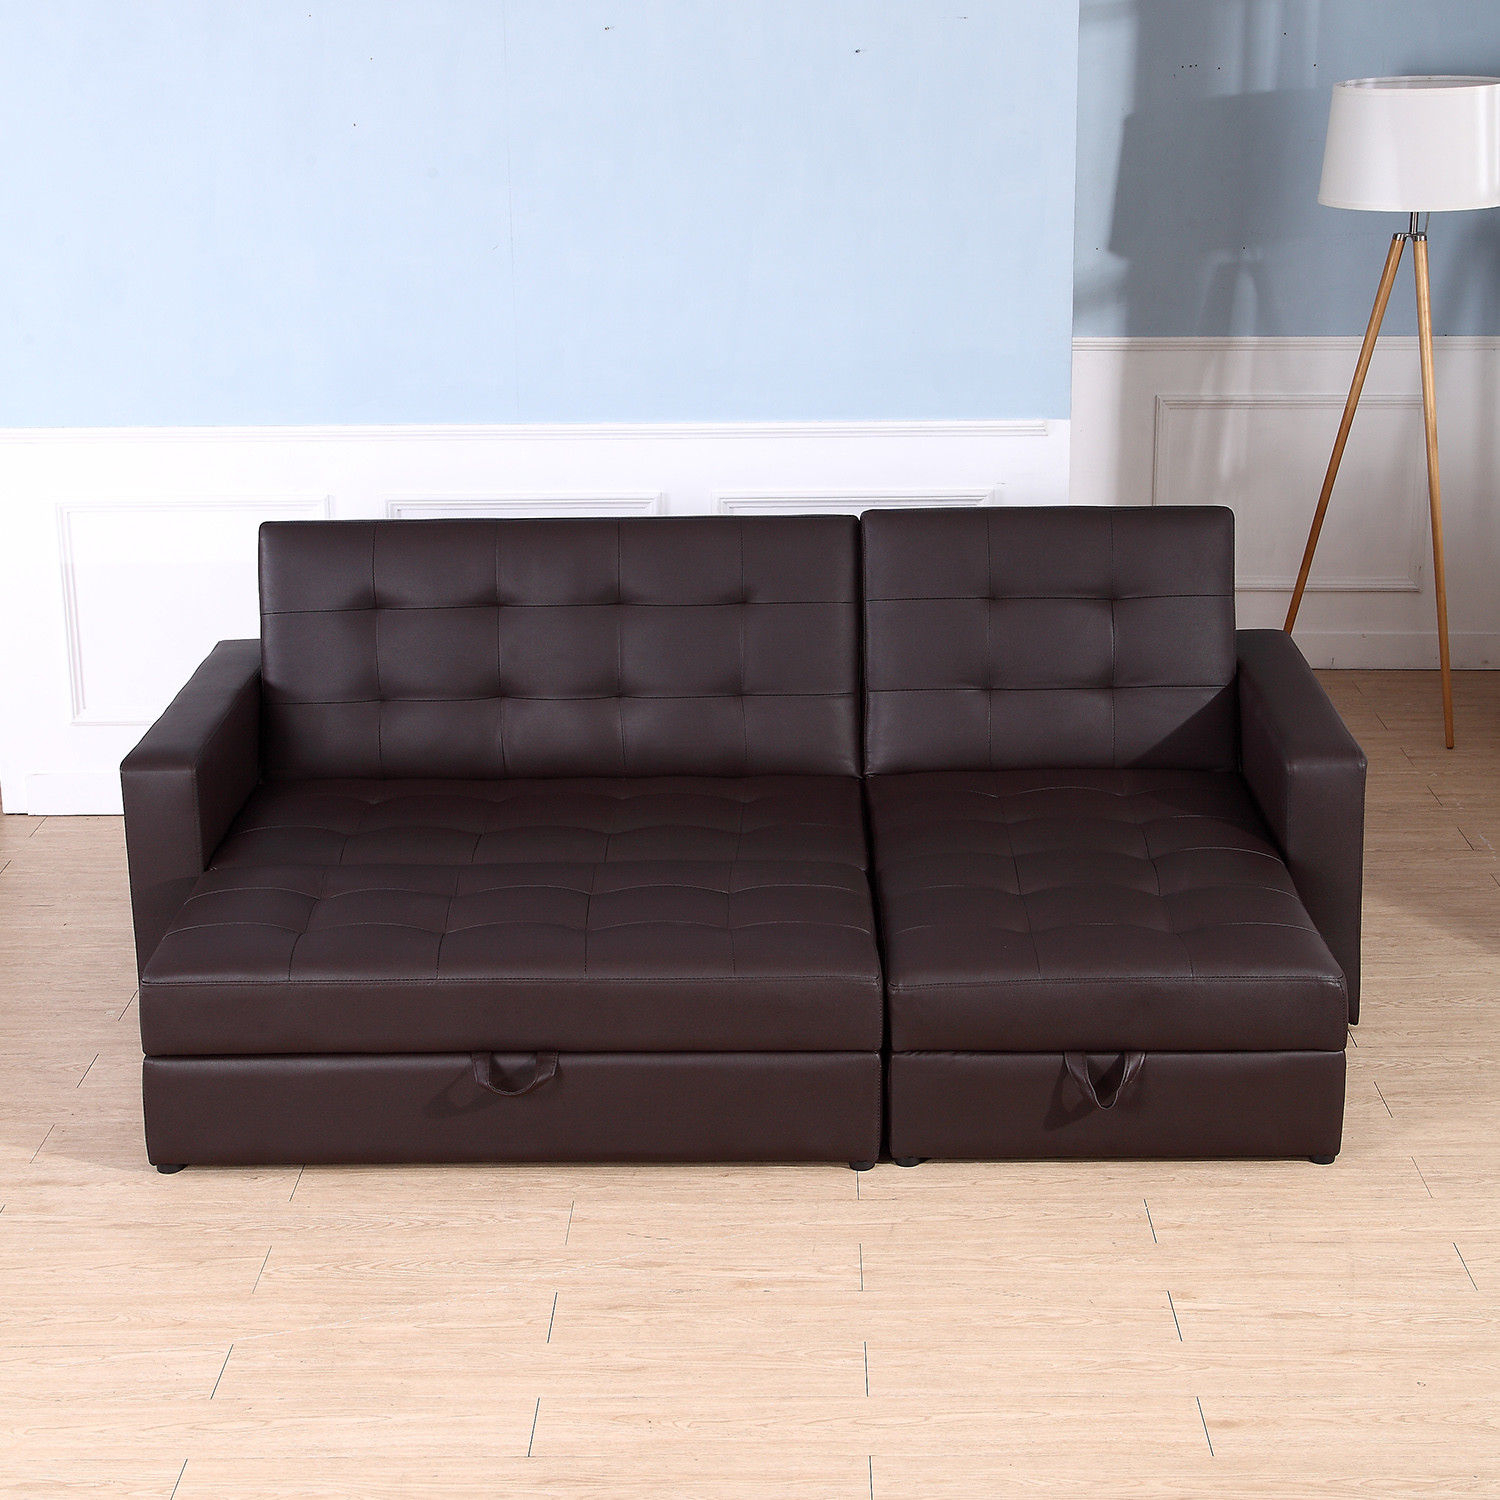 Sofa Bed Storage Sleeper Chaise Loveseat Couch Sectional With Regard To Live It Cozy Sectional Sofa Beds With Storage (View 7 of 15)